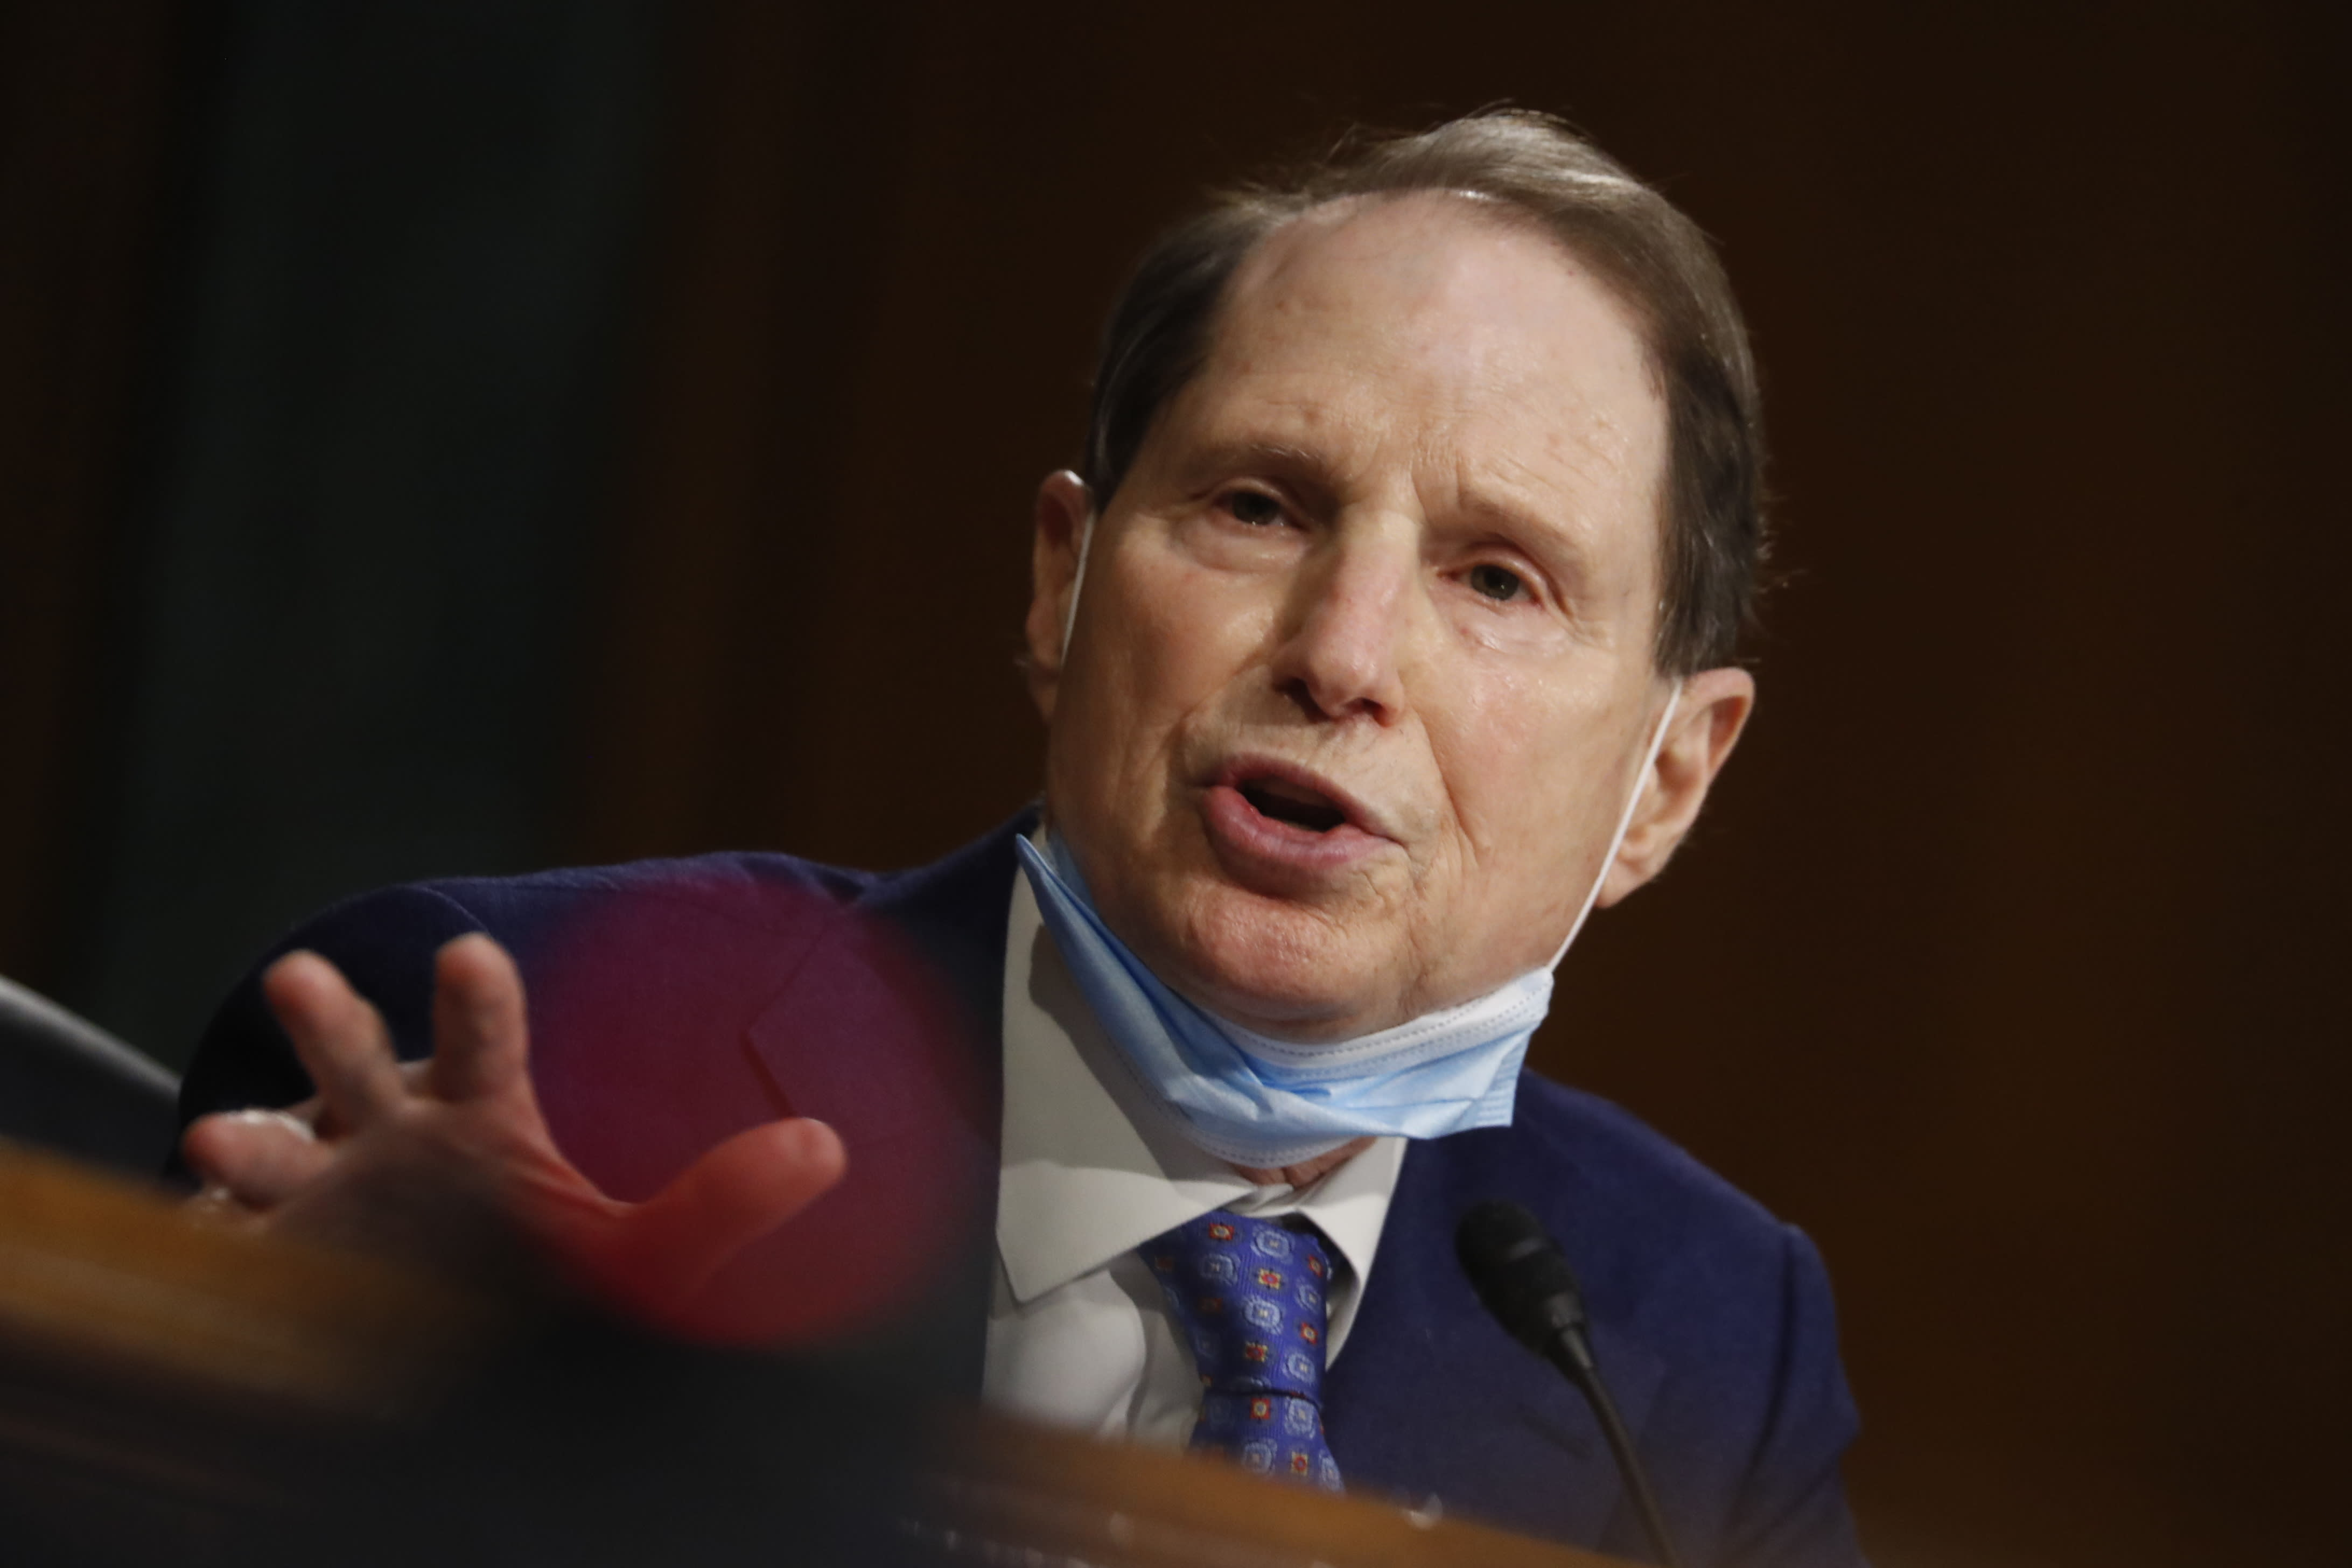 Sen. Ron Wyden, D-Ore., speaks during a Senate Intelligence Committee nomination hearing for Rep. John Ratcliffe, R-Texas, on Capitol Hill in Washington, Tuesday, May. 5, 2020. The panel is considering Ratcliffe's nomination for director of national intelligence. (AP Photo/Andrew Harnik, Pool)